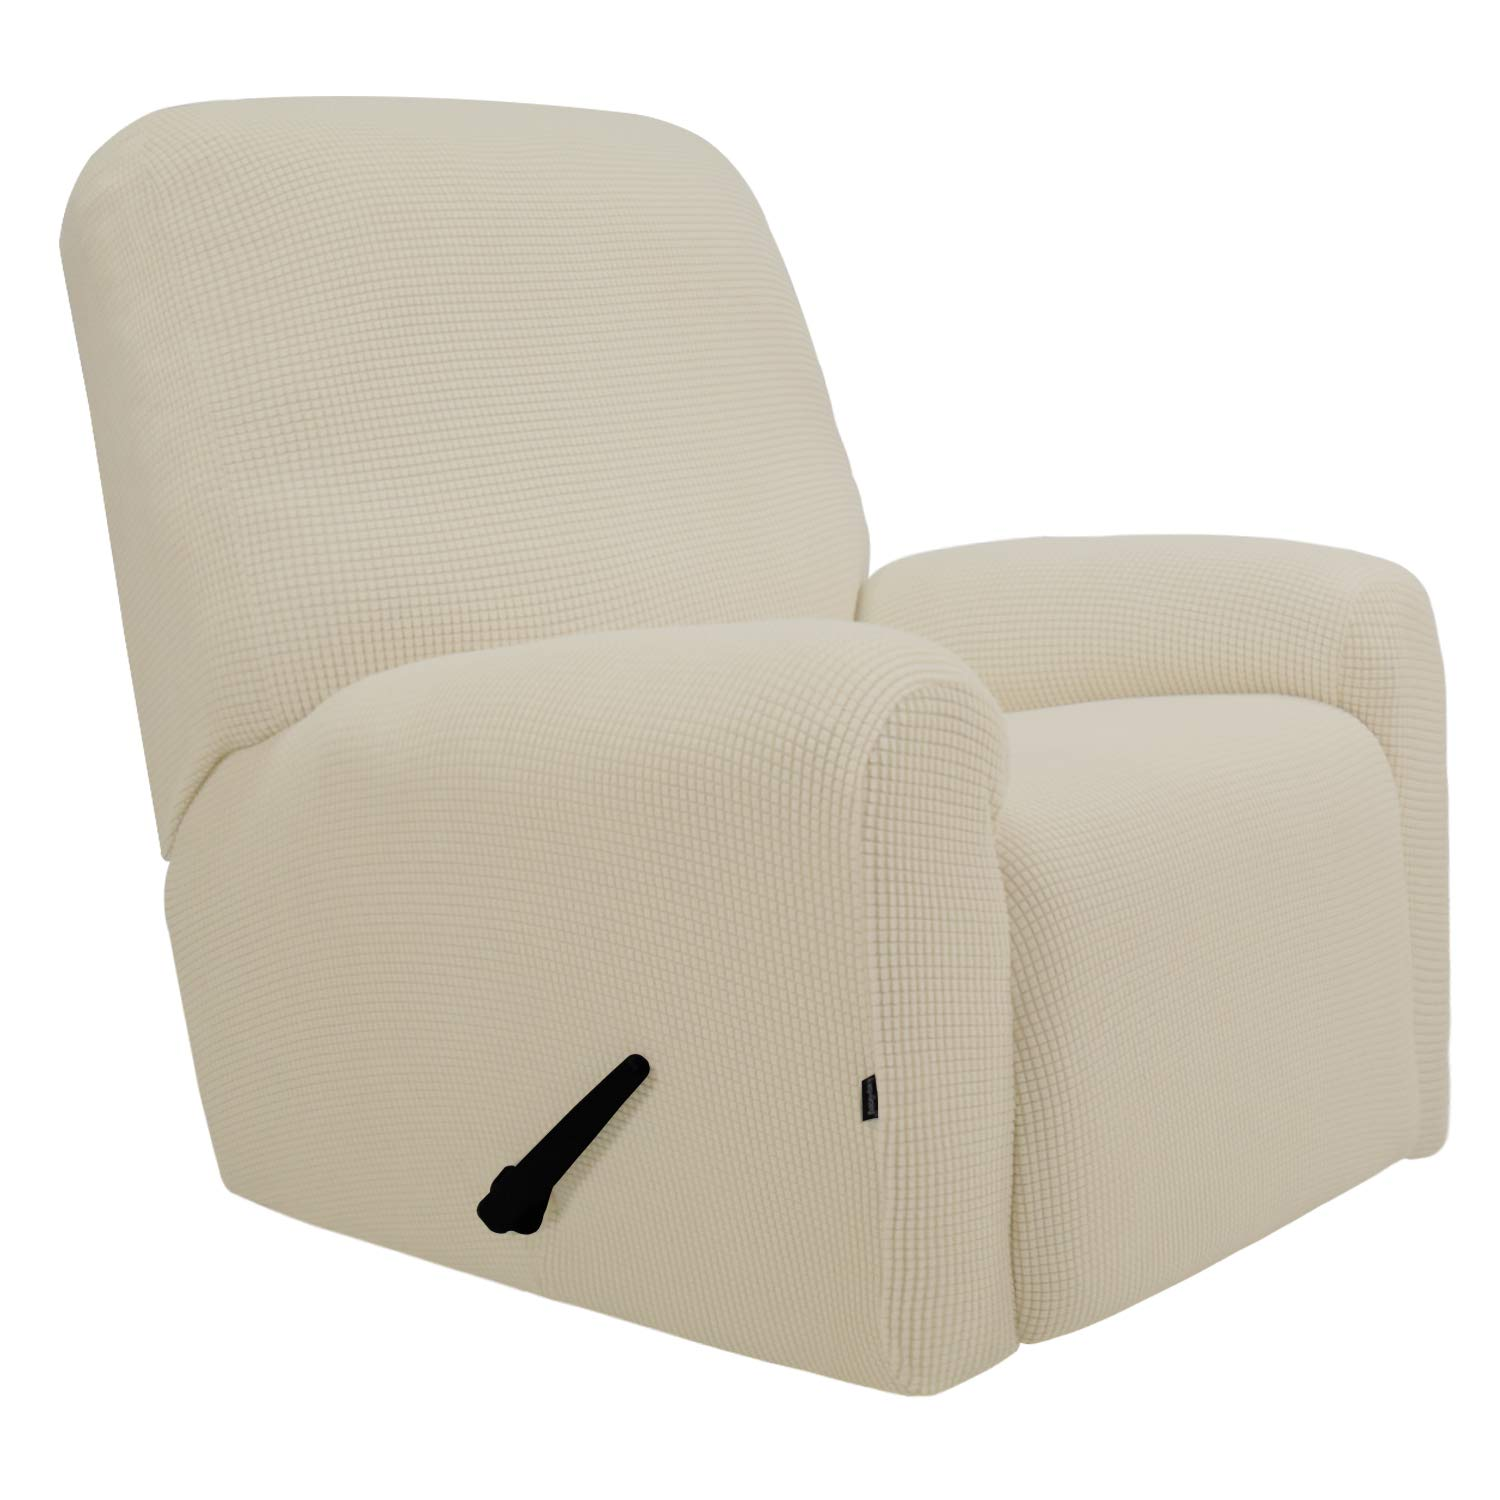 (recliner, Ivory) - Stretch Recliner Slipcovers, Sofa Covers, 4 Pieces Furniture Protector with Elastic Bottom,Straps, Couch Shield with Pocket,Polyester Spandex Jacquard Fabric Small Cheques by Easy-Going(Recliner,Ivory) recliner アイボリー B076NNRJYM